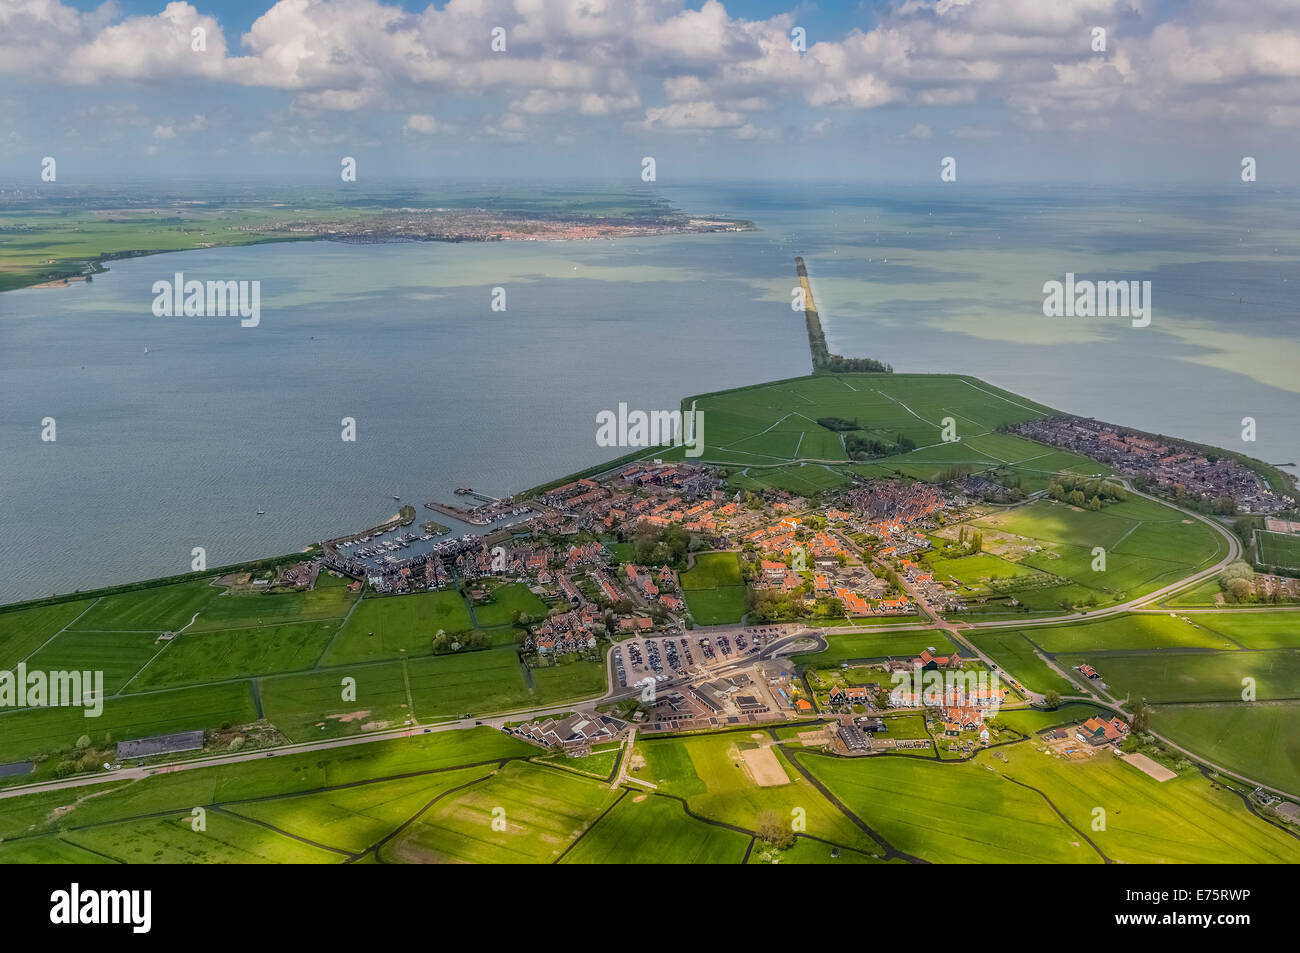 Aerial view, fishermen's houses on the island of Marken, Province of North-Holland, Netherlands - Stock Image